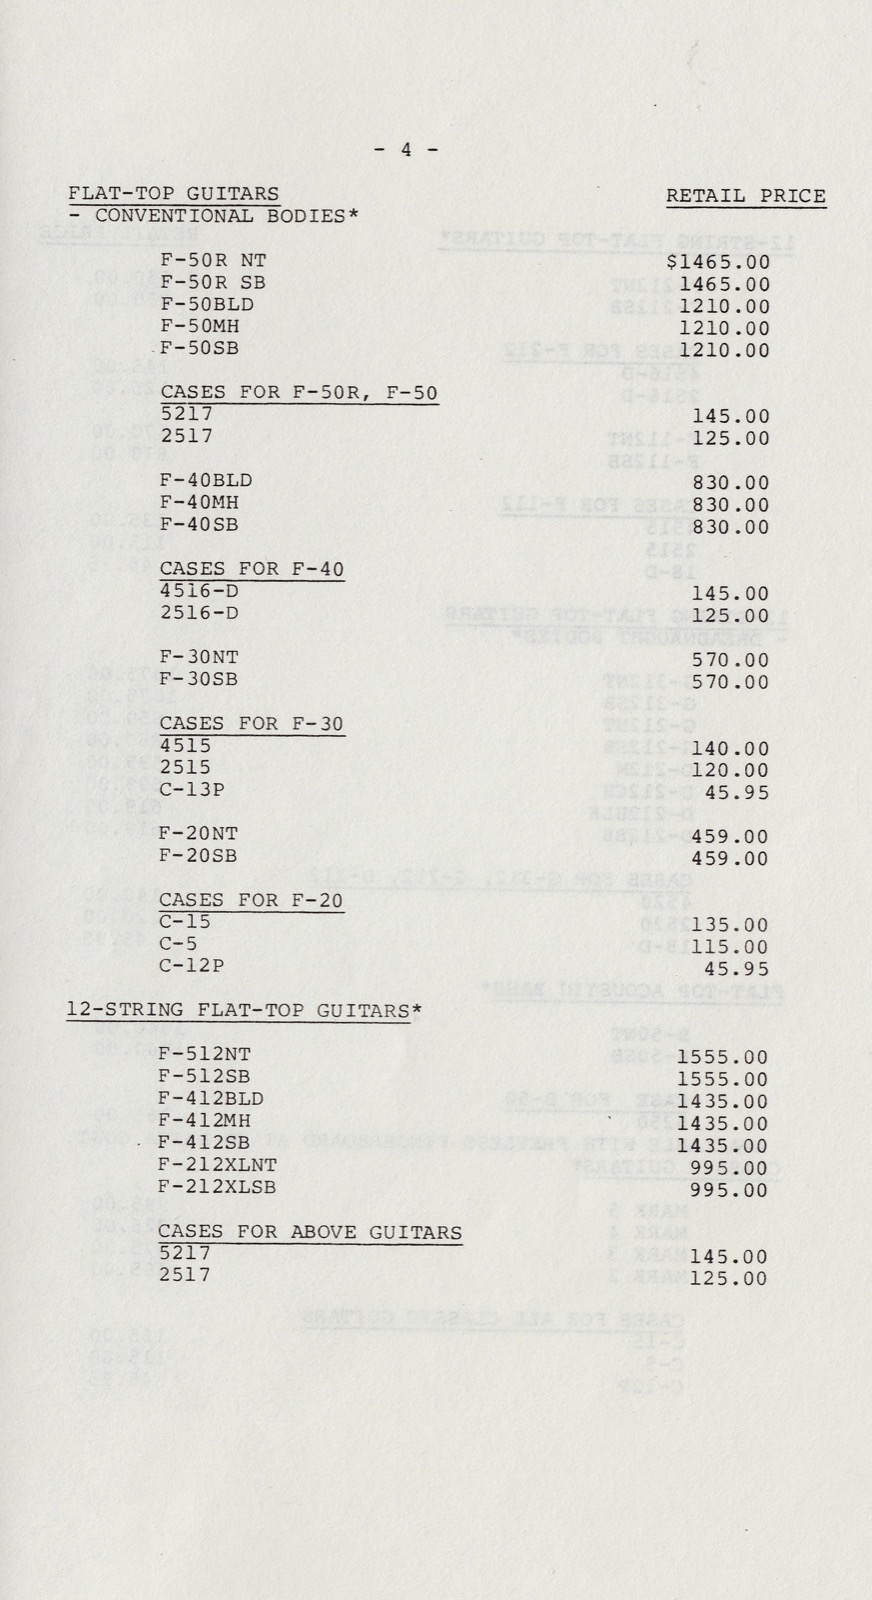 guild guitar price list 1982 march gad 39 s ramblings. Black Bedroom Furniture Sets. Home Design Ideas